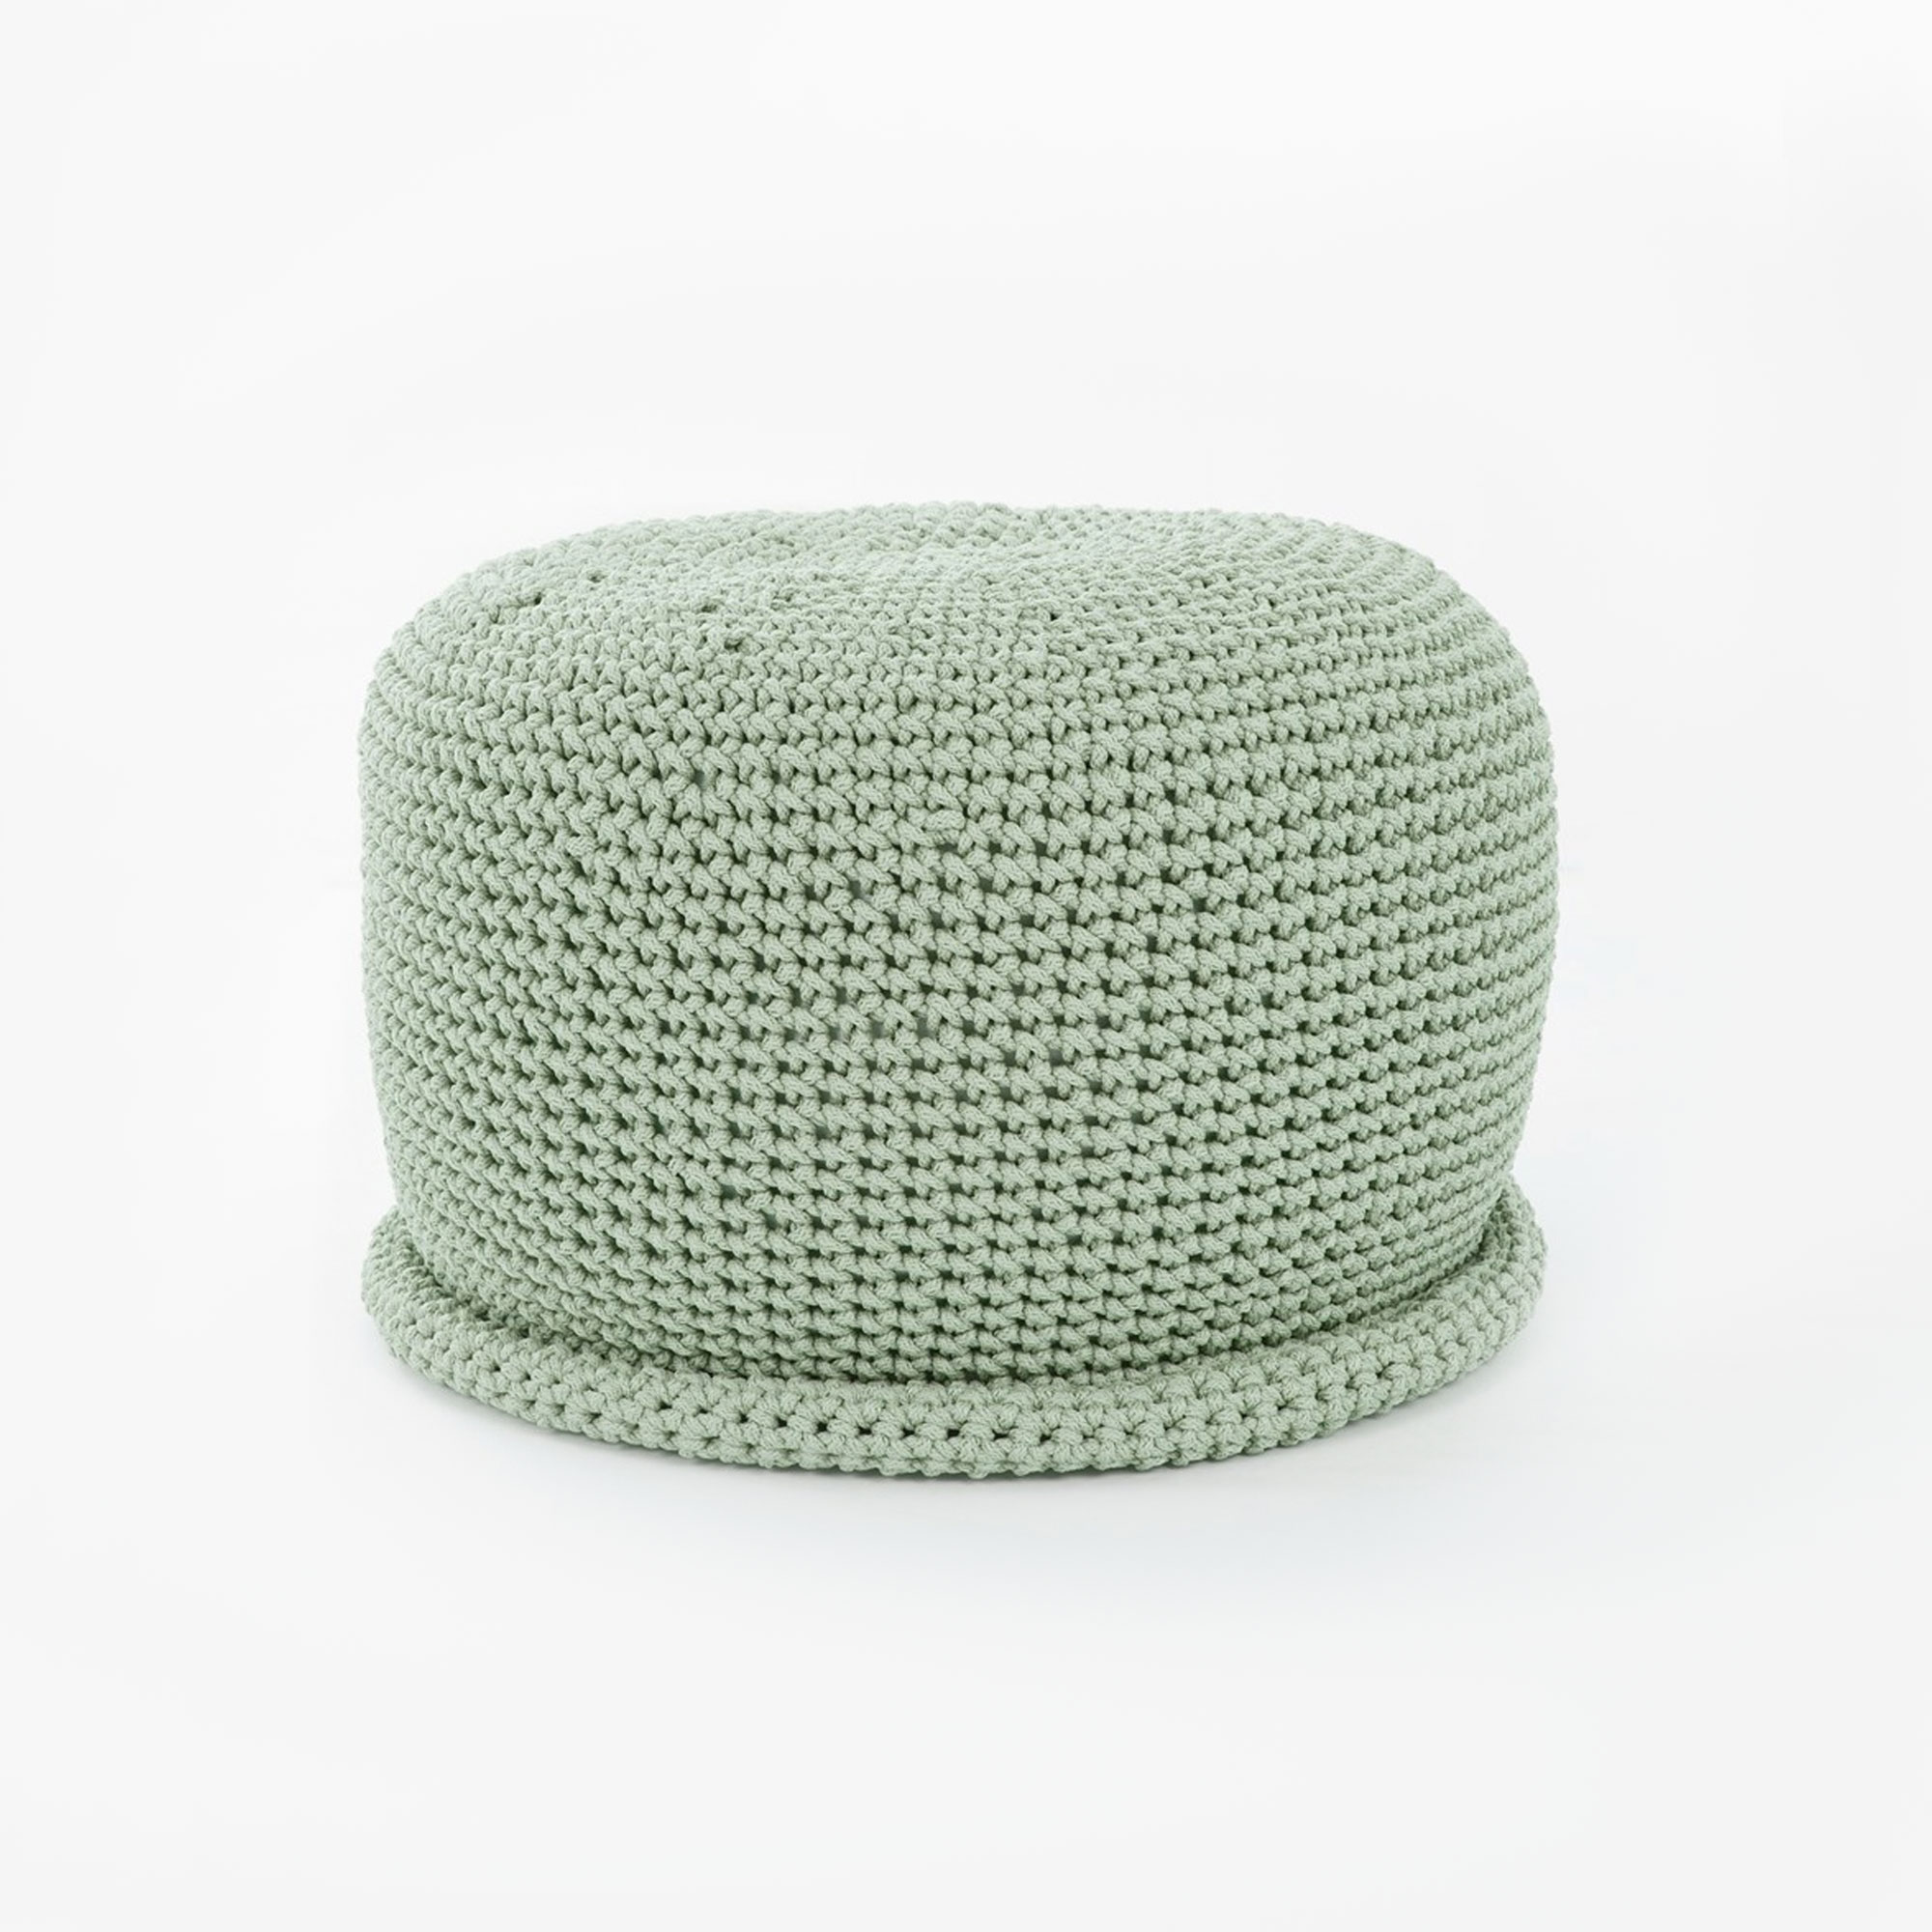 Pouf Mint Cap Crocheted Pouf Mint